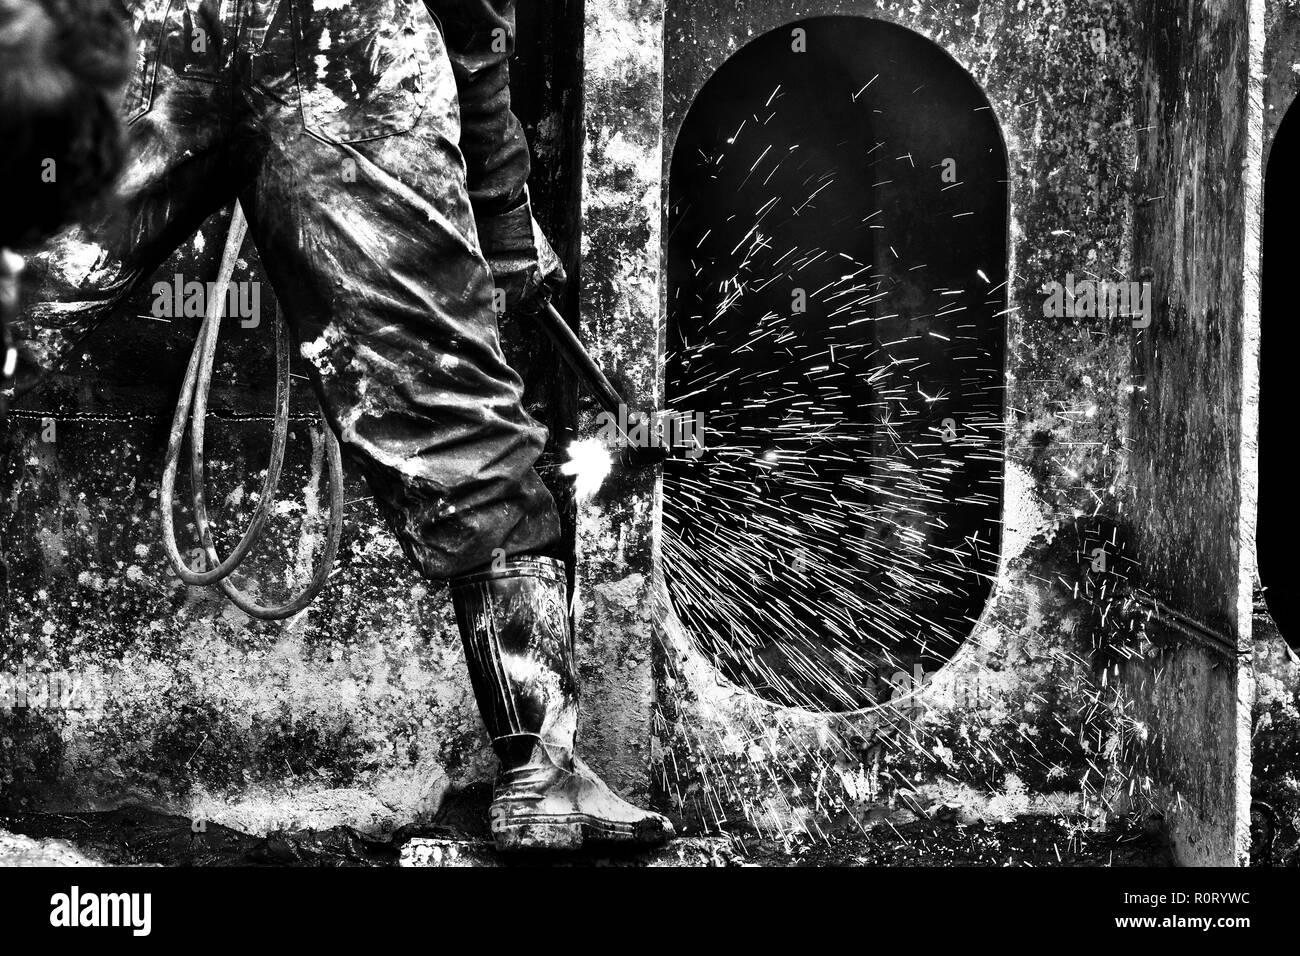 Labourer works at ship- breaking yard. Bangladesh is dependent on ship-breaking industry for 80% of its steel needs. Chittagong, Bangladesh. - Stock Image